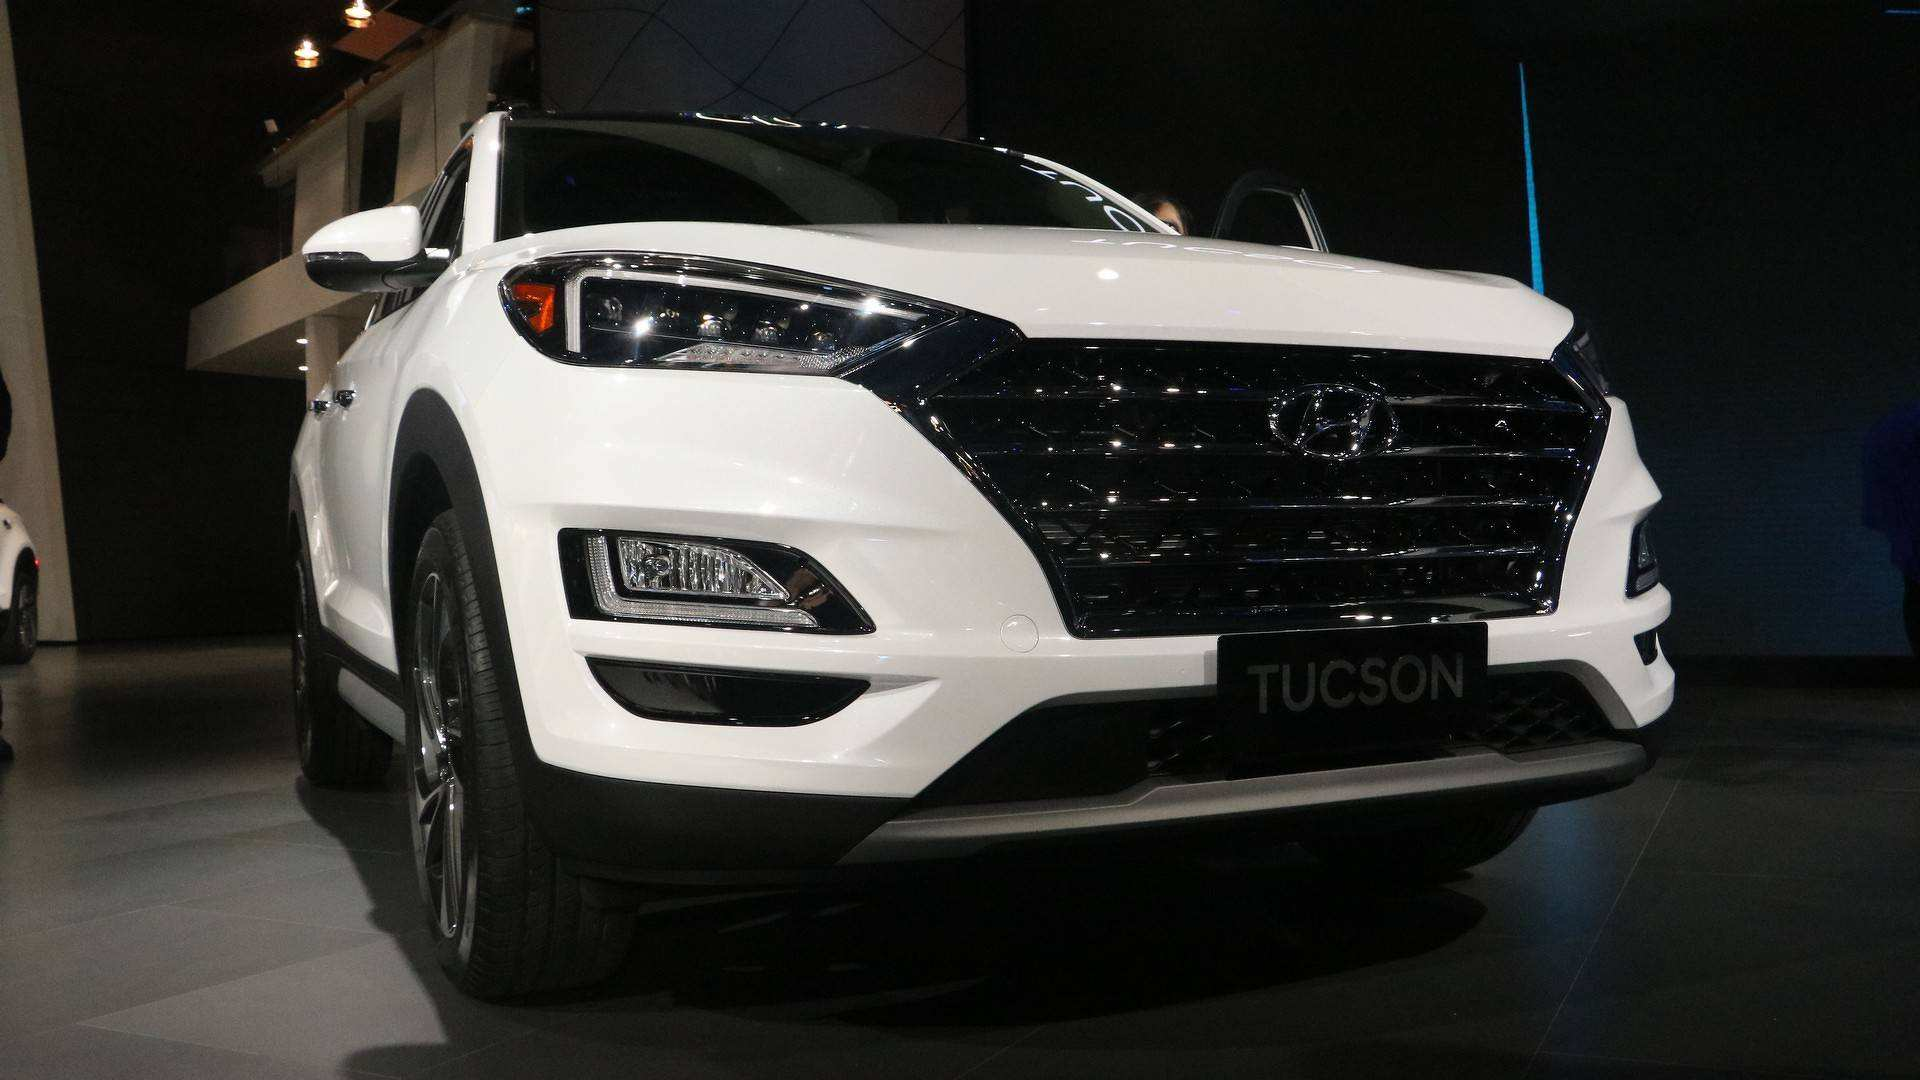 45 All New Hyundai Tucson 2019 Facelift Price Design And Review